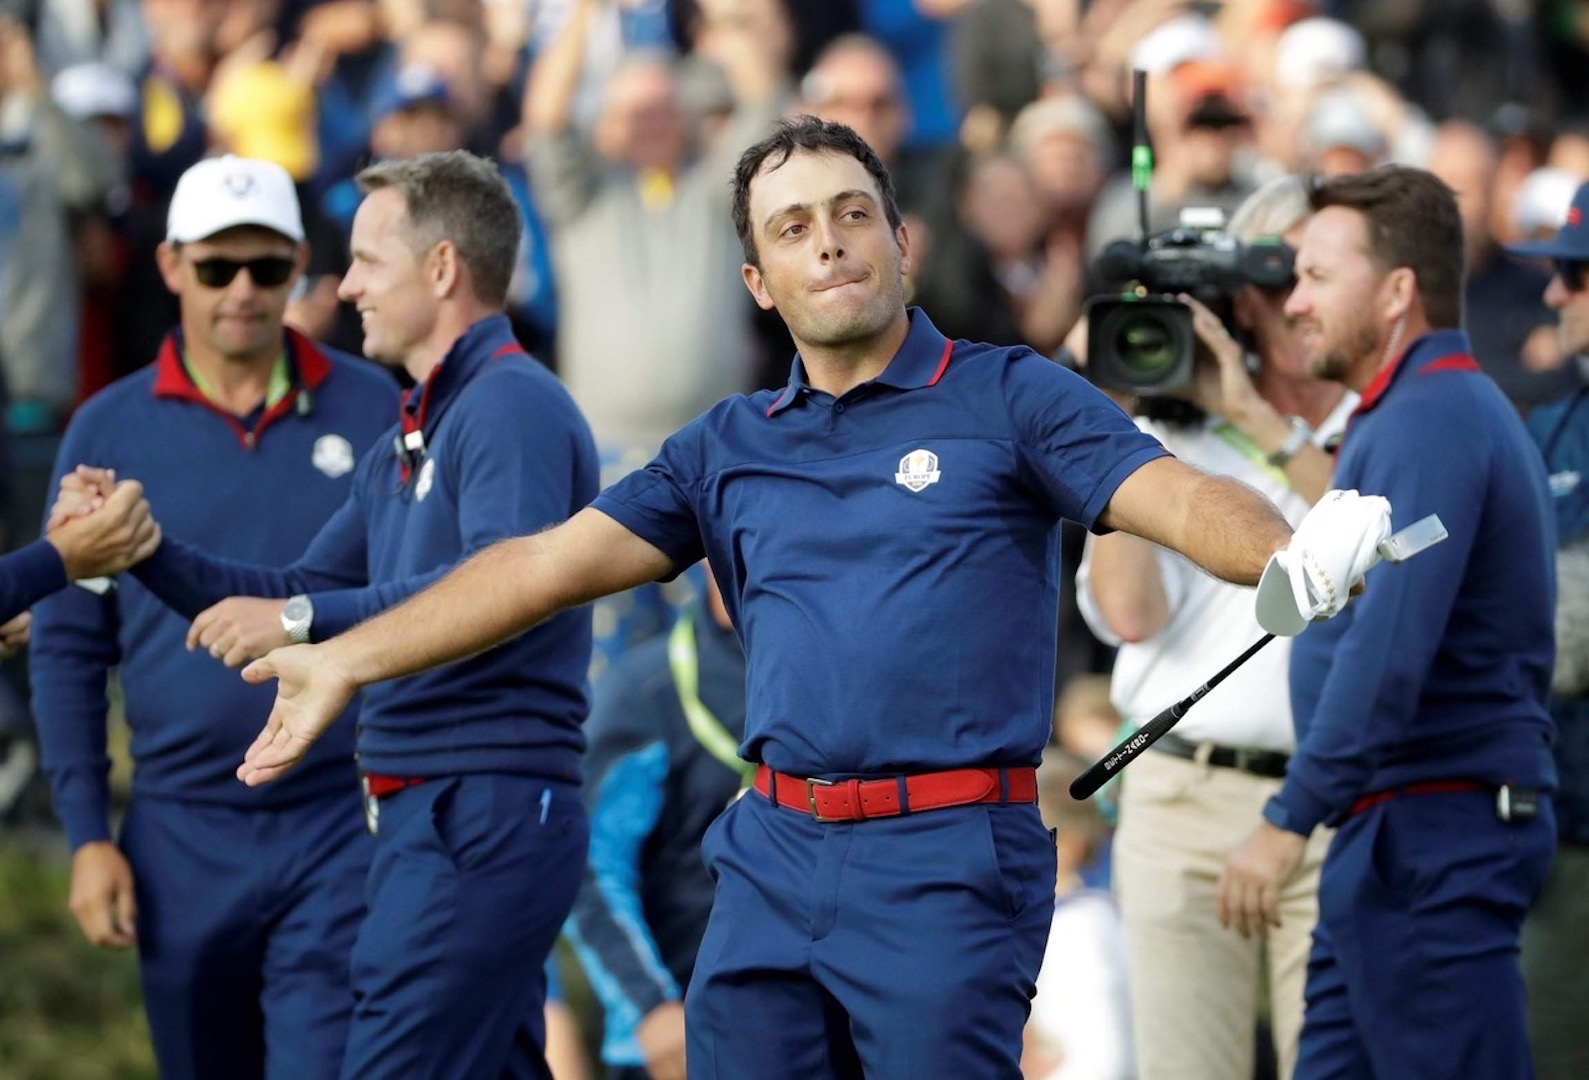 Custom-fit Bettinardi puts Molinari in Ryder Cup record books